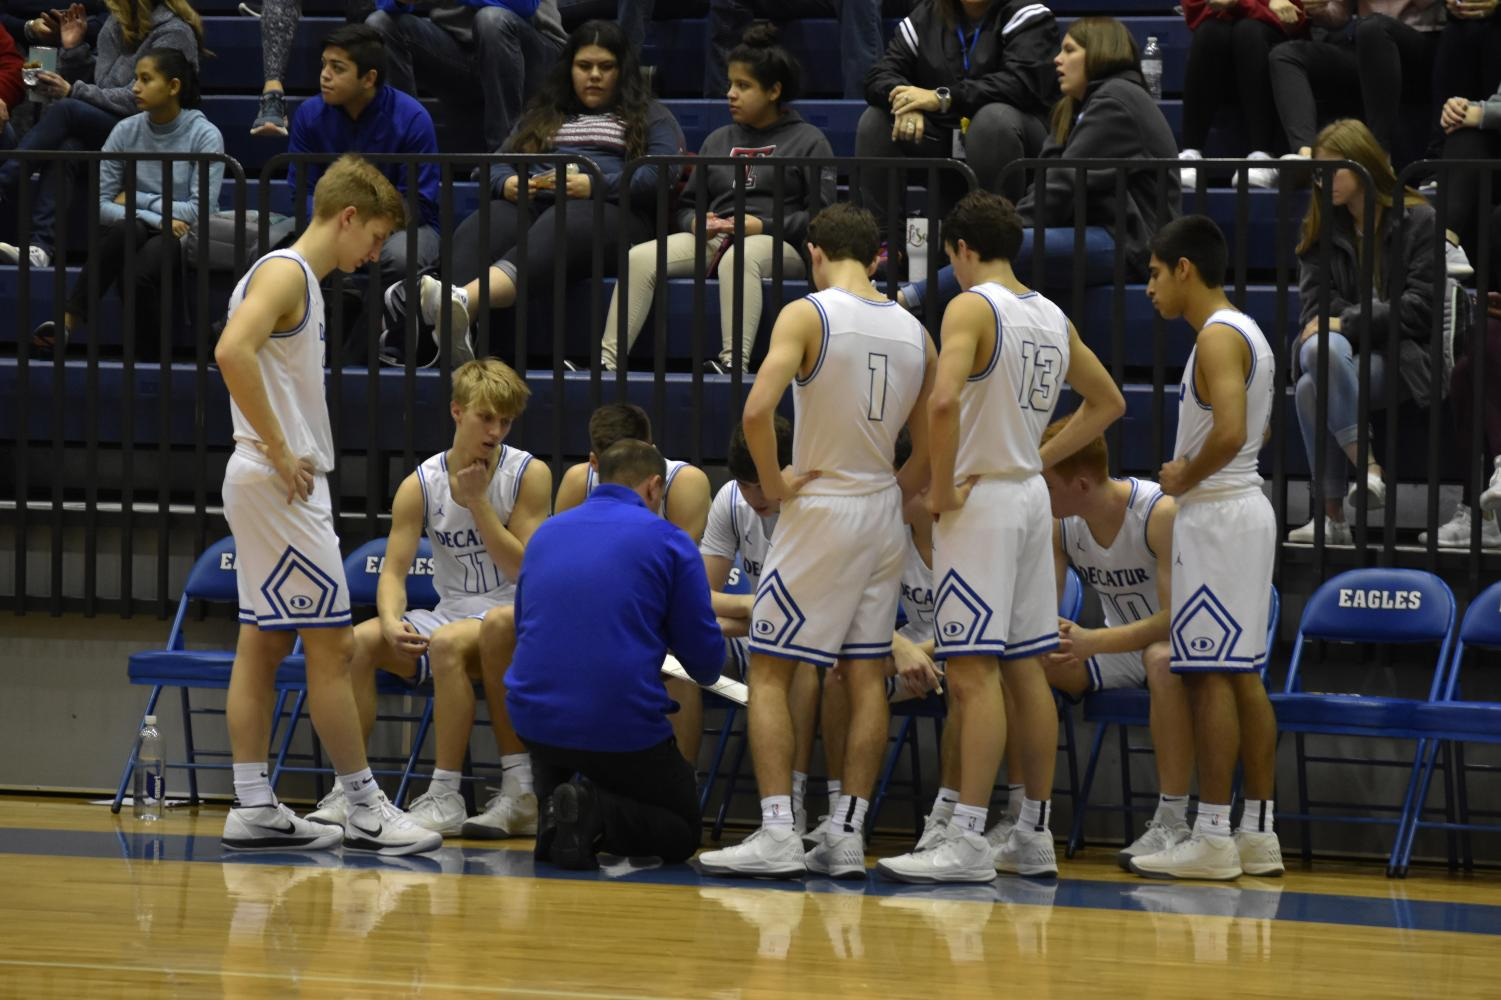 Pictured: Coach Drew Coffman advising his varsity basketball team  Photo courtesy of Lindsay Gogniat